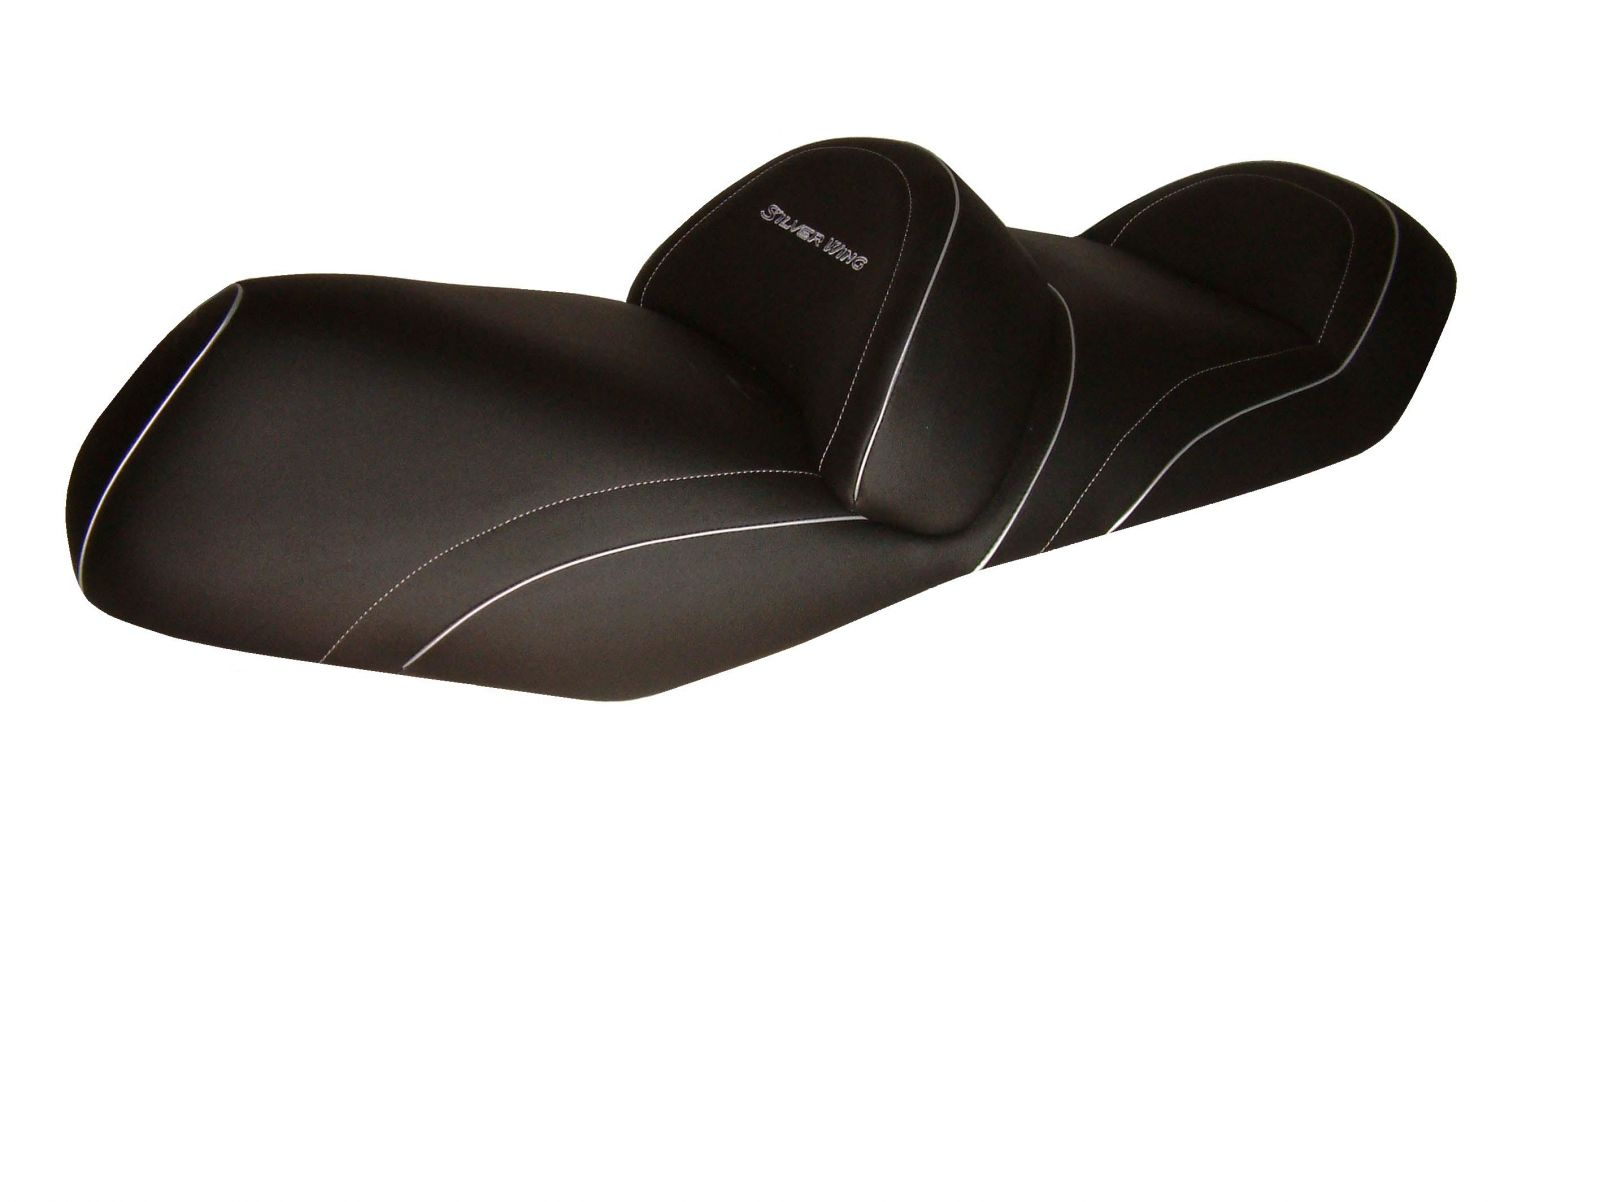 Deluxe seat SGC2670 - HONDA SILVER WING 600 [≤ 2008]